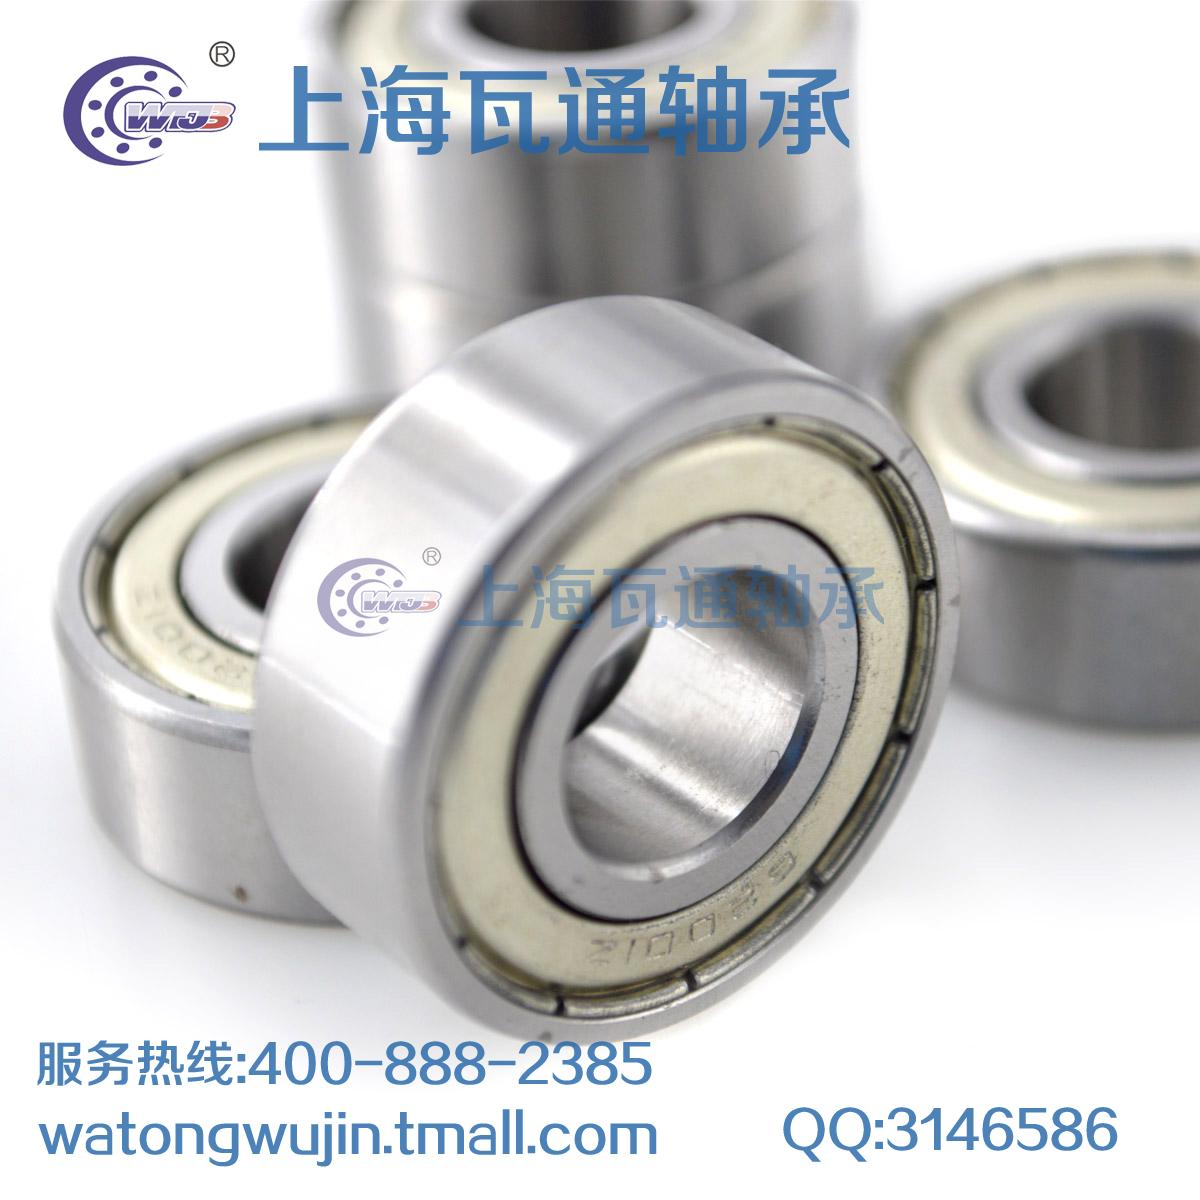 Miniature bearings deep groove ball bearings 624zz r-1340 size: 4*13*5mm line cutting guide wheel bearings